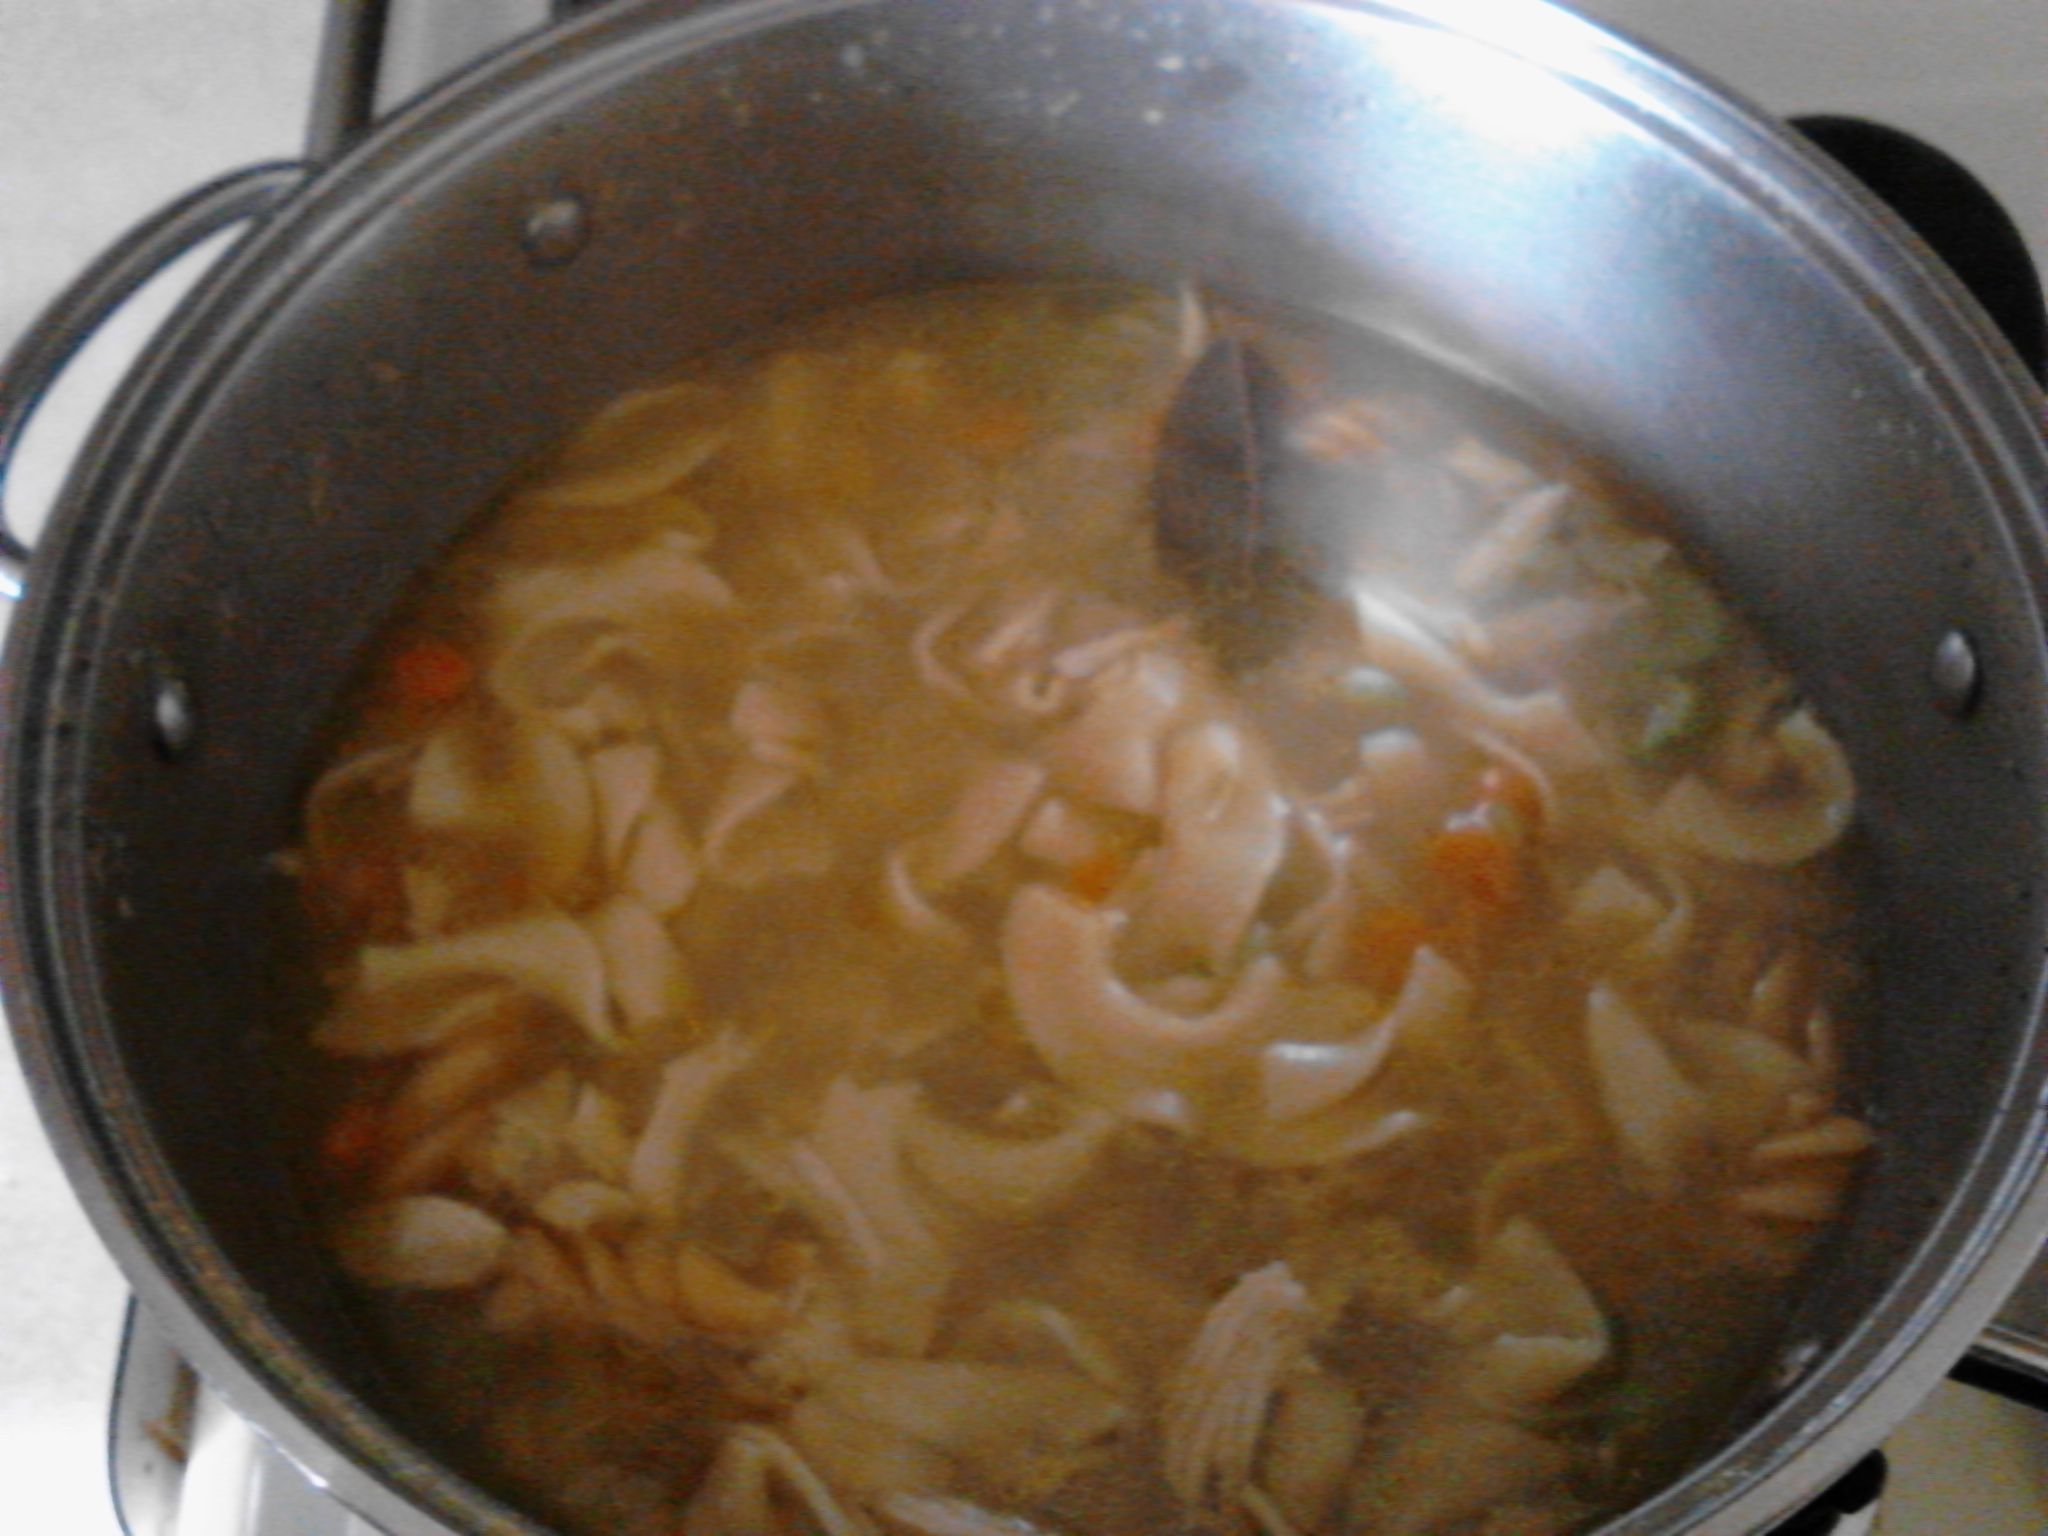 Homemade chicken noodle soup recipe from tyler florence http homemade chicken noodle soup recipe from tyler florence http forumfinder Image collections